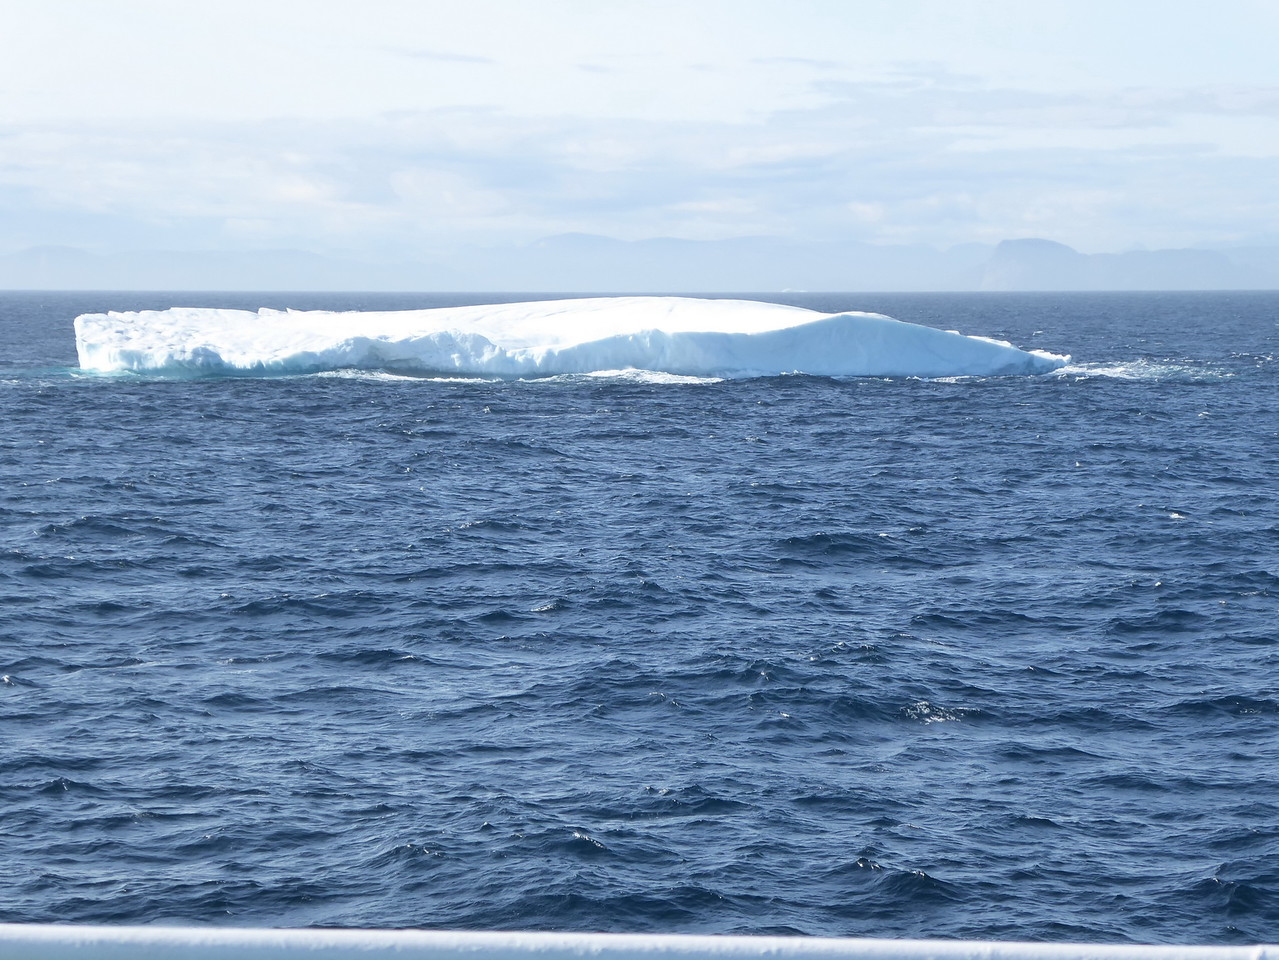 Back in Davis Strait of Baffin Bay - a tabular iceberg. There was quite a distance to travel to get to Monumental Island for the next day.